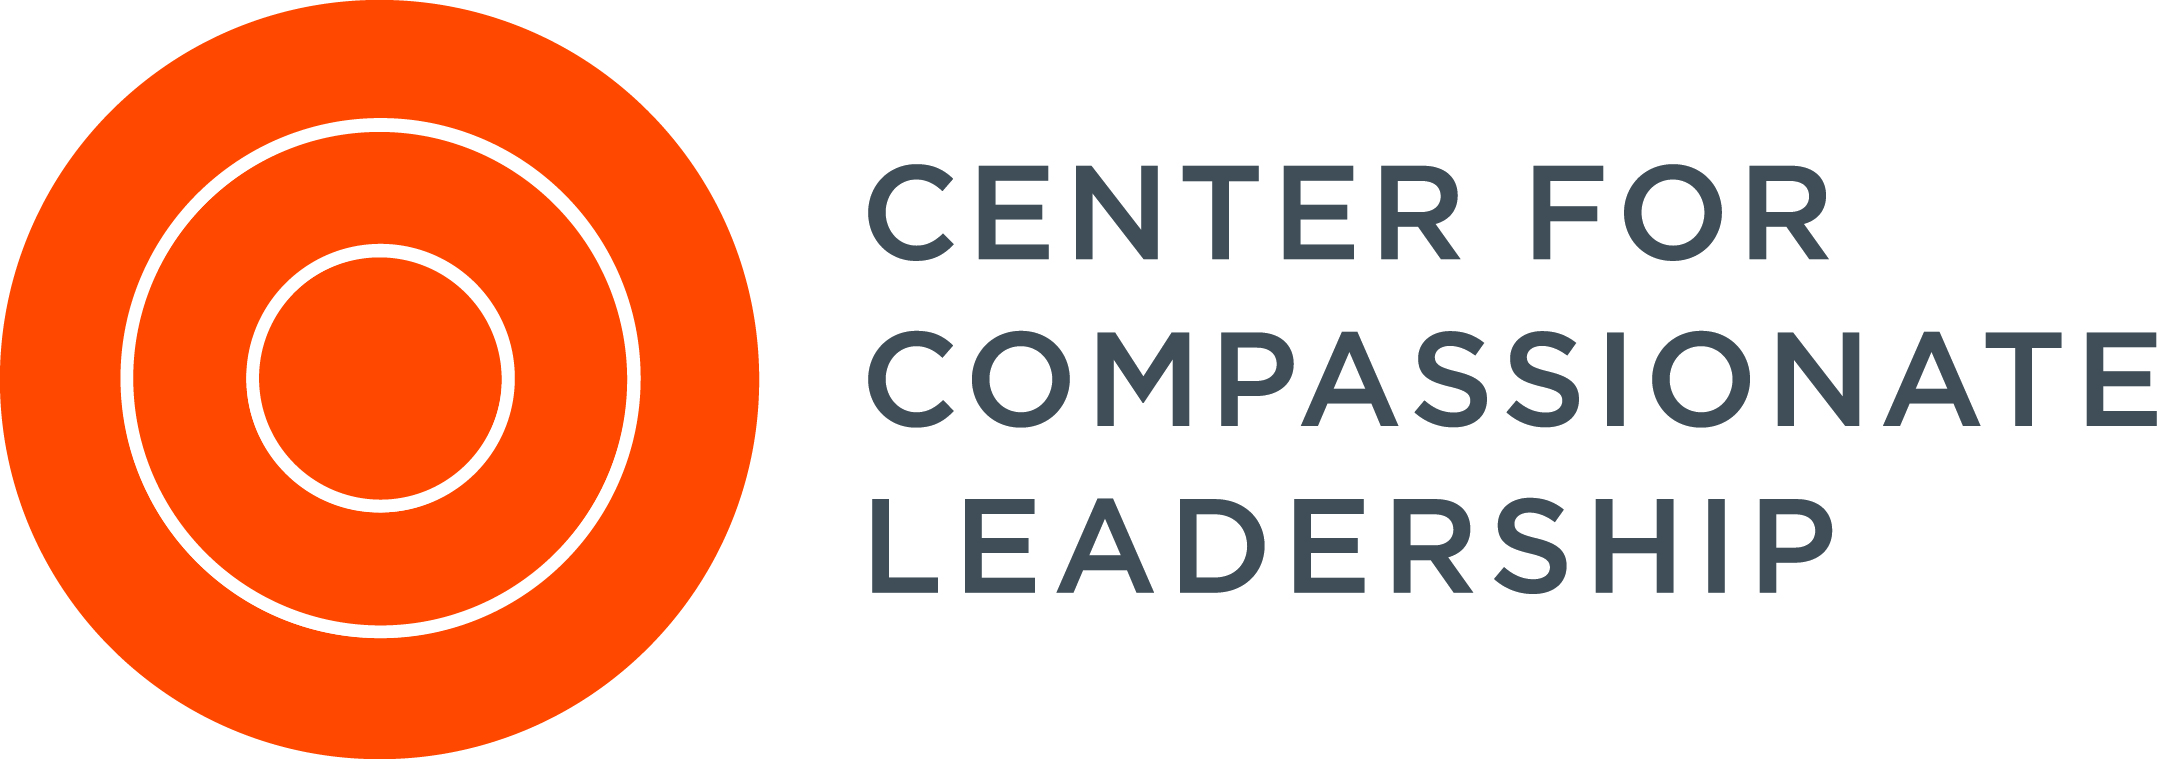 Center for Compassionate Leadership